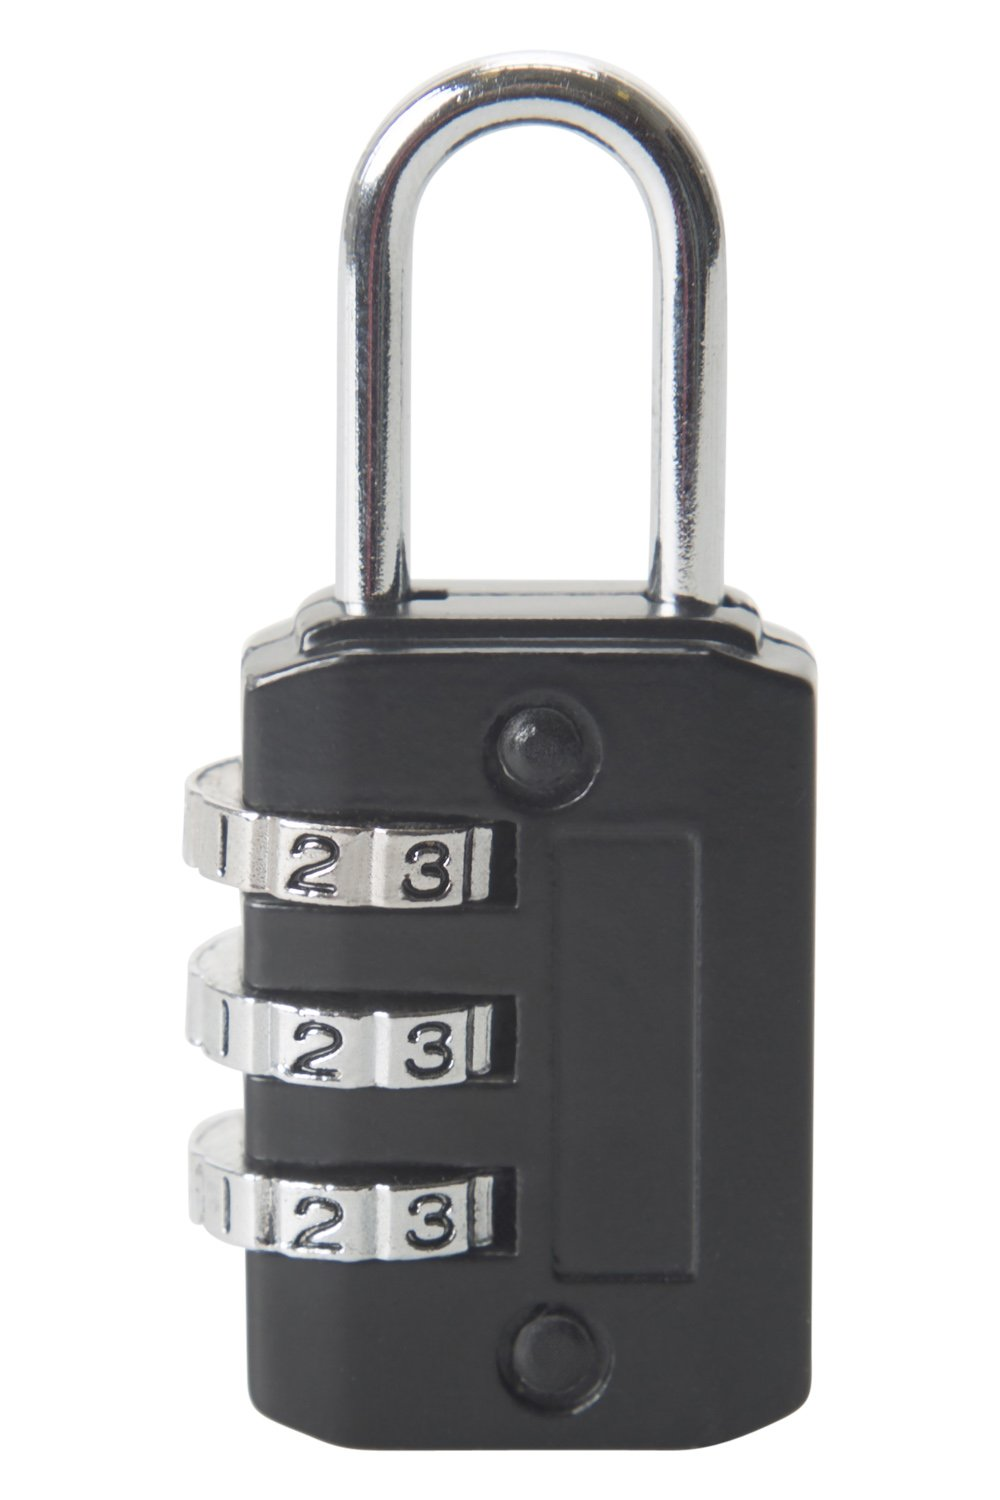 Mountain Warehouse Three Dial Combination Padlock - Durable Door Lock Black 022323005001